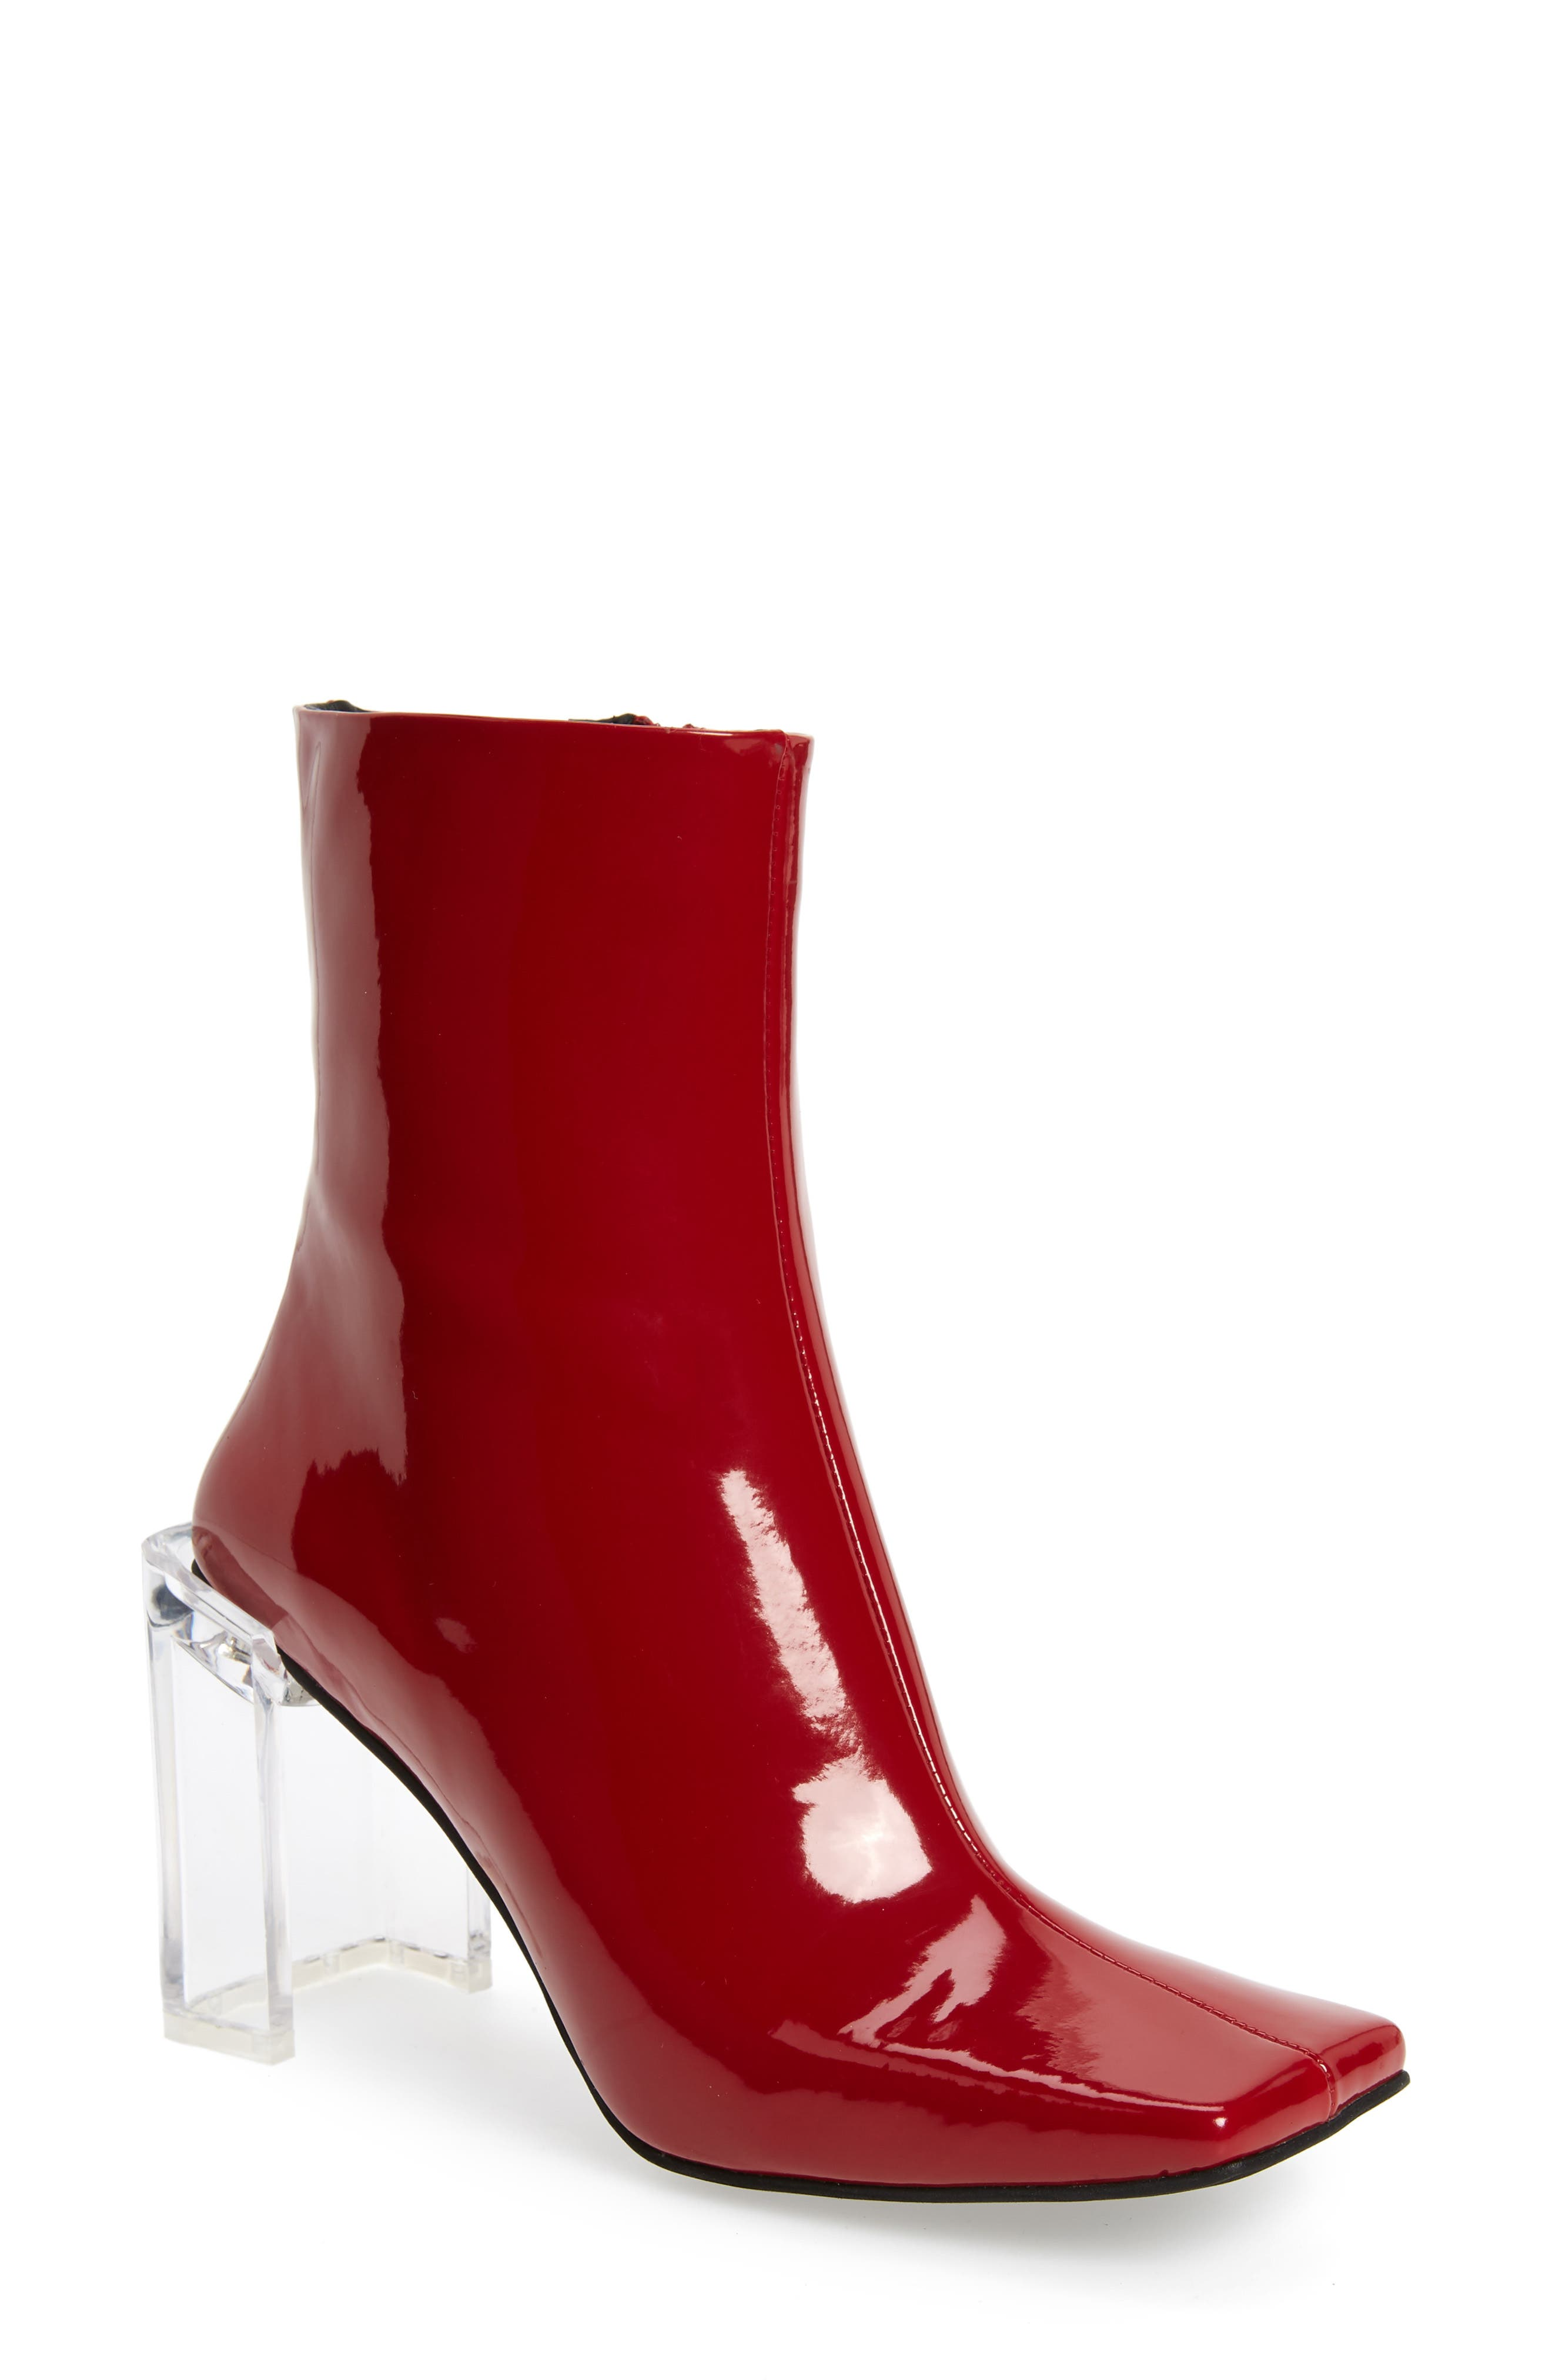 Jeffrey Campbell Kayak 2 Bootie- Red